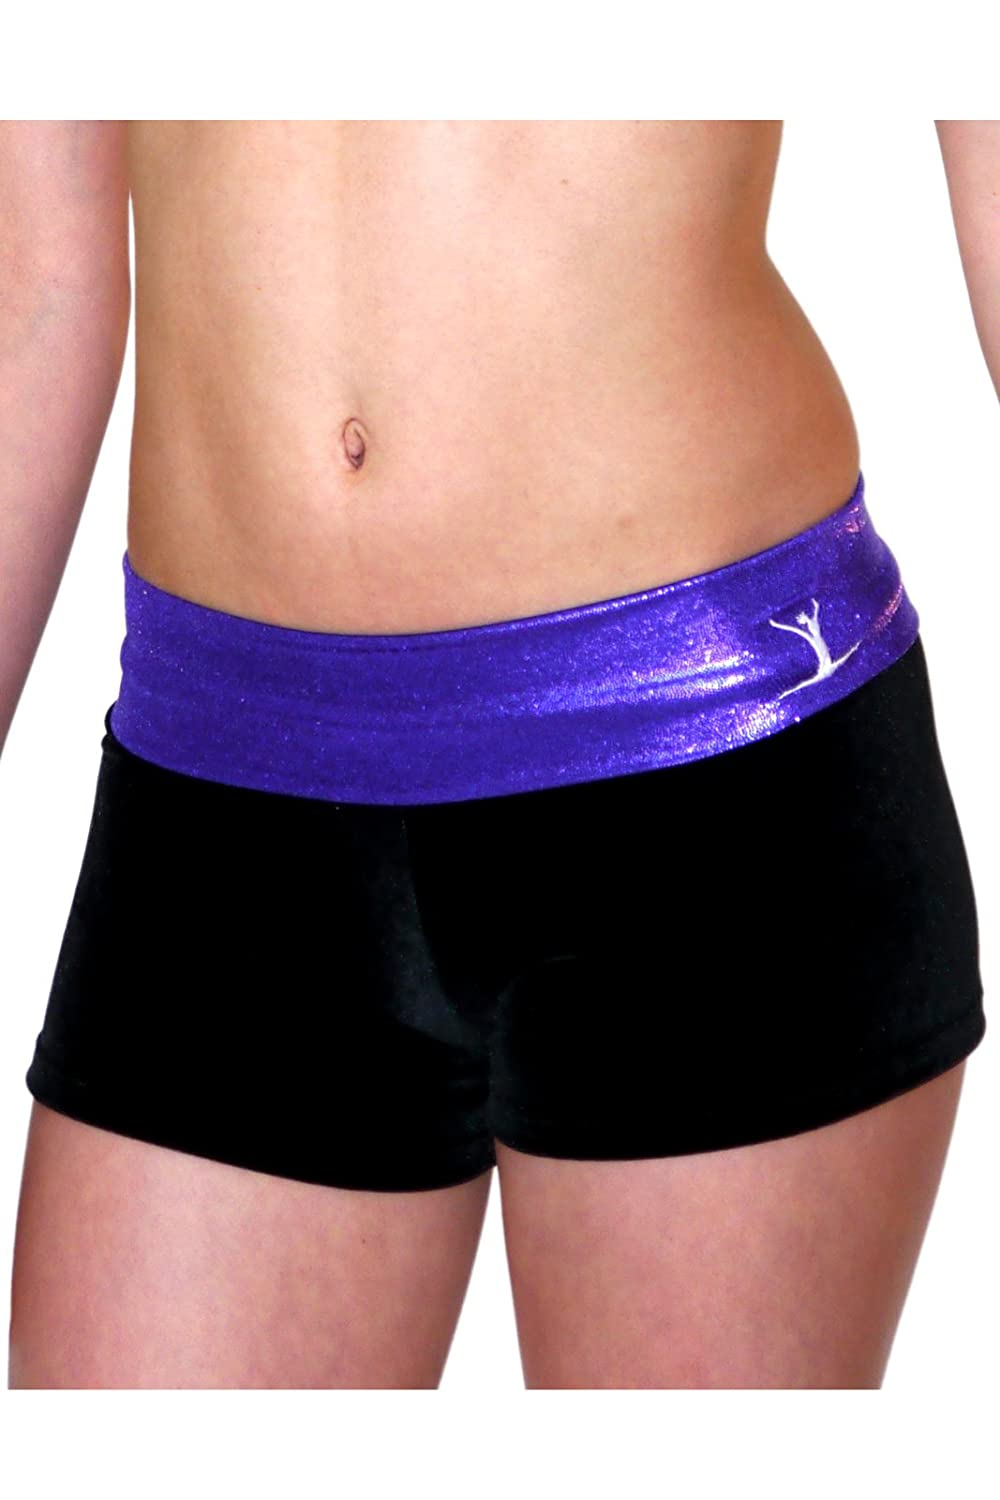 TW Purple/Black Hipster Shorts